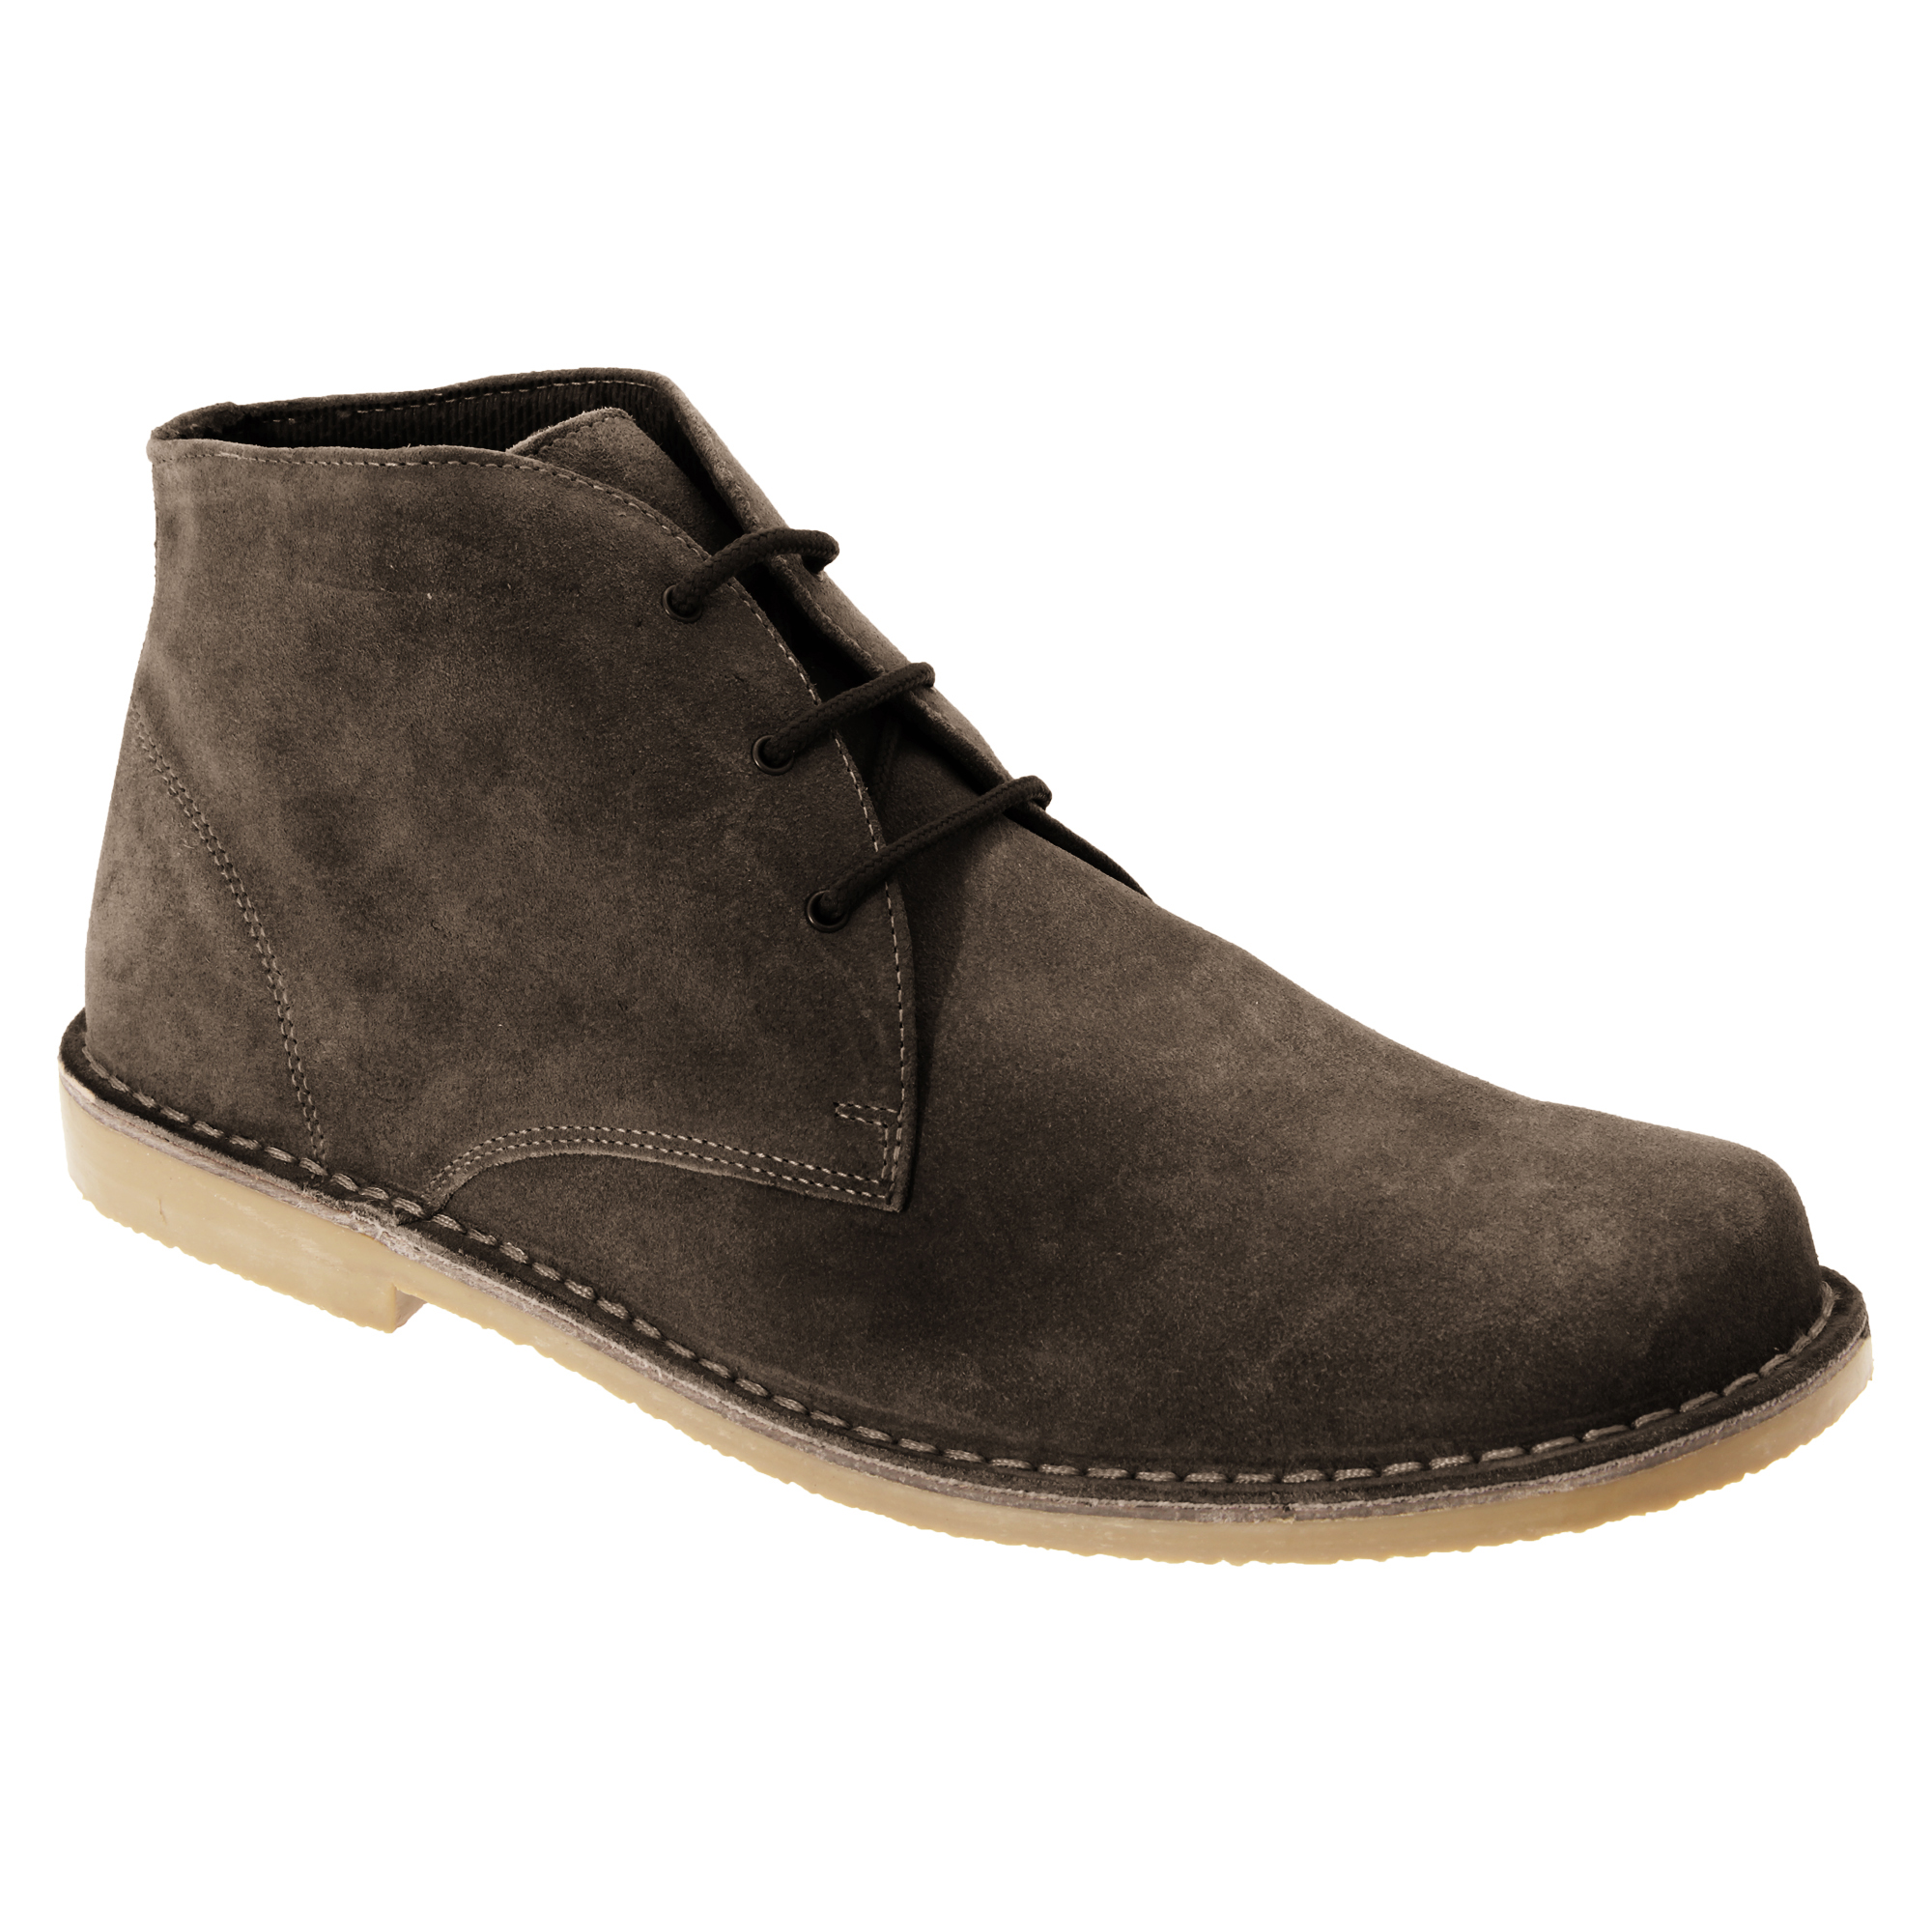 roamers mens real suede fulfit casual desert ankle boots shoes sizes 7 15 ebay. Black Bedroom Furniture Sets. Home Design Ideas